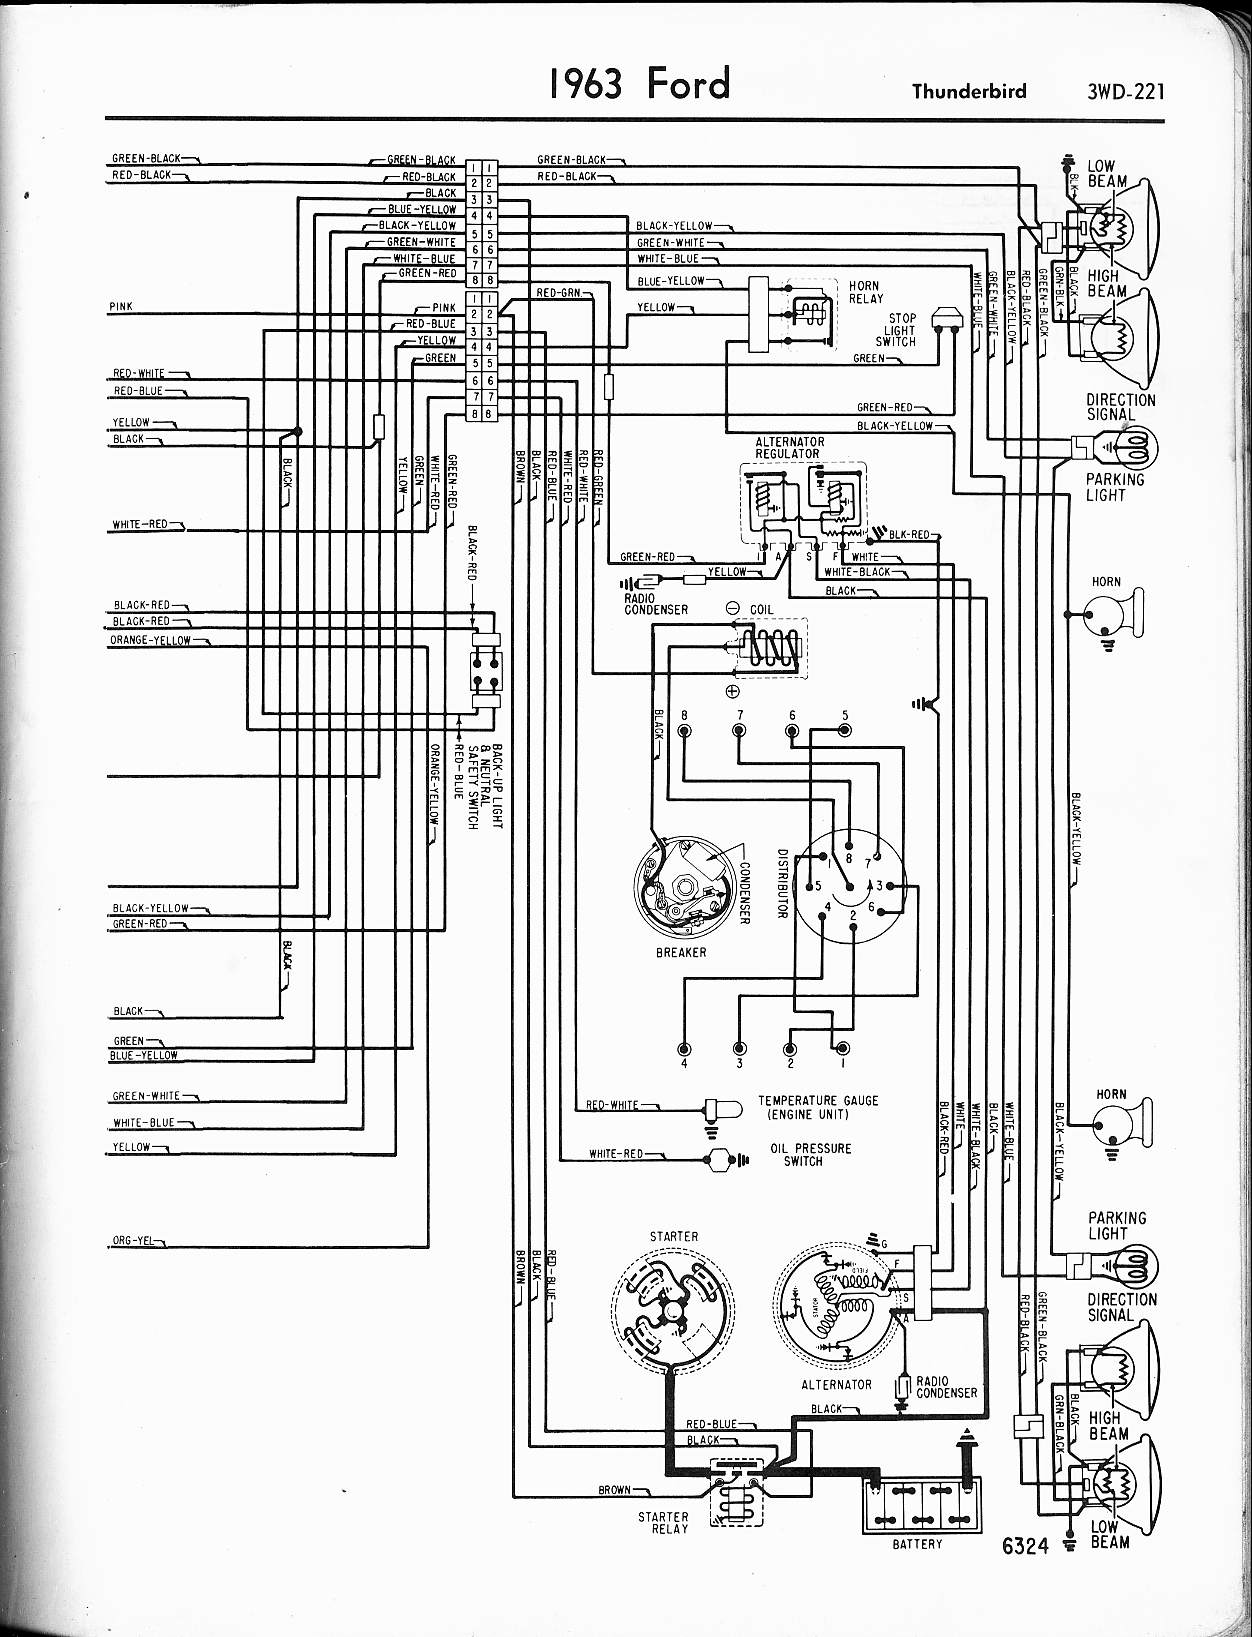 MWire5765 221 57 65 ford wiring diagrams 1965 thunderbird alternator wiring diagram at soozxer.org